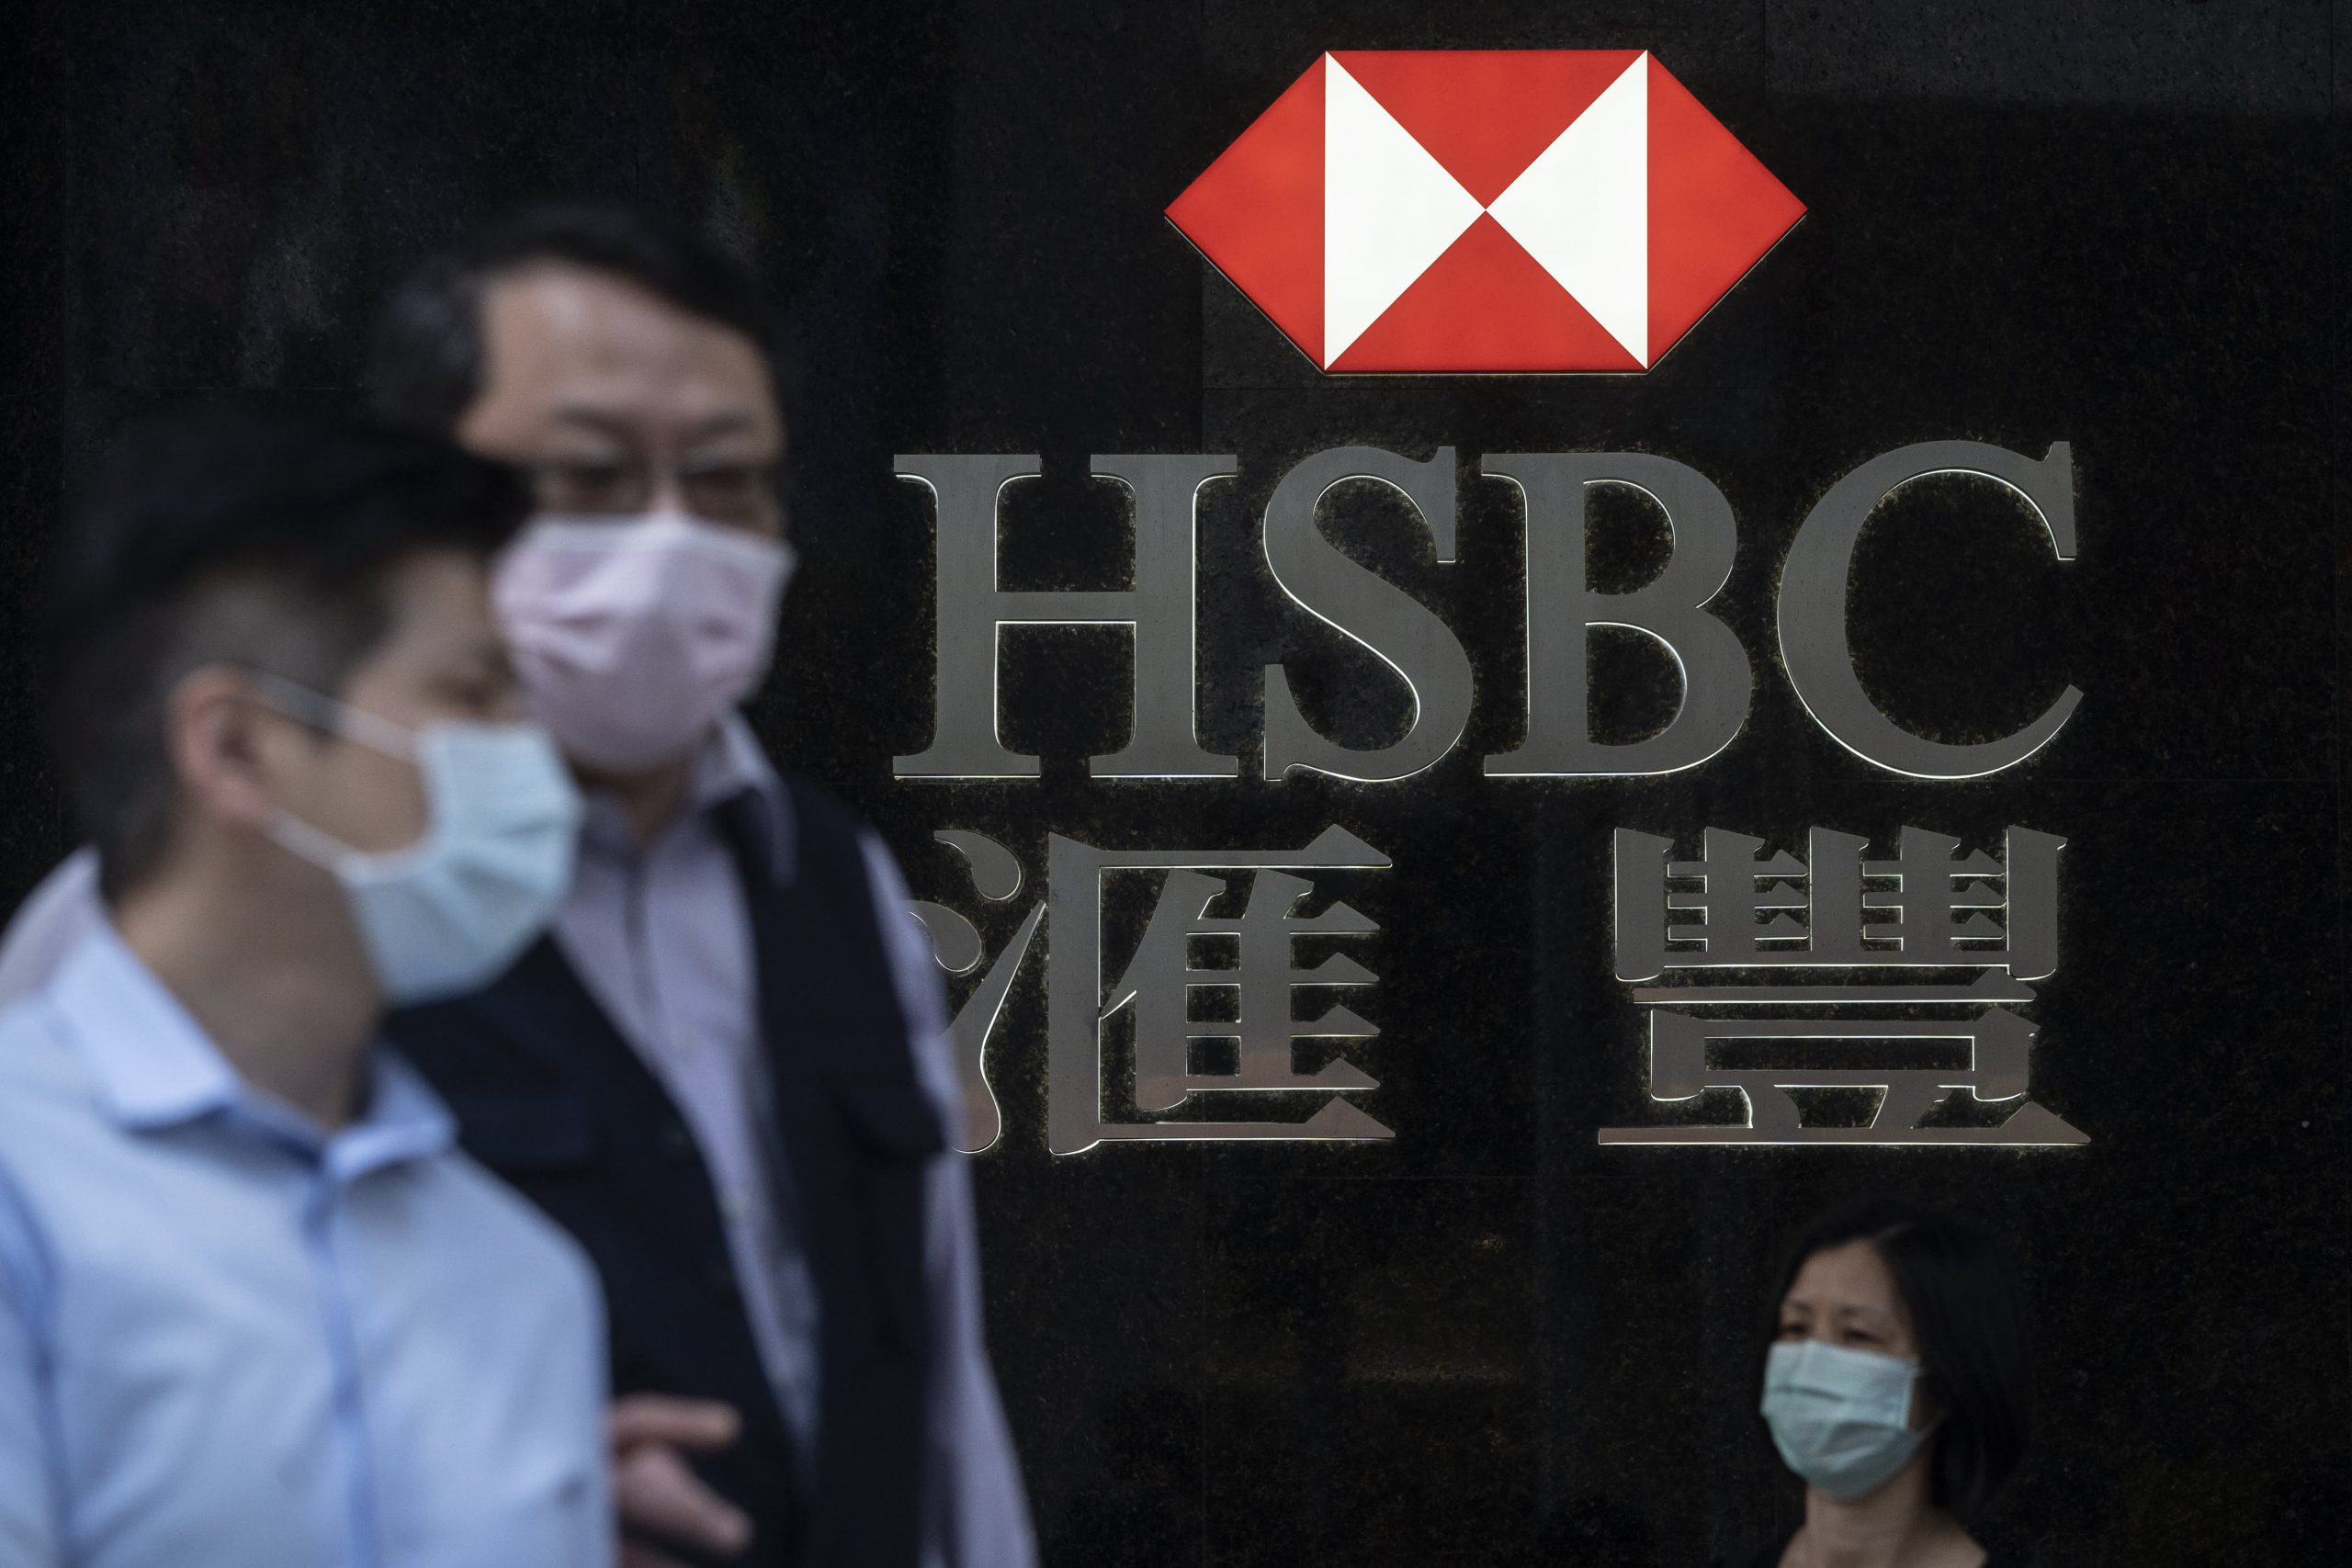 HSBC shares in Hong Kong up 2.7% after pre-tax profit in the first quarter beat expectations